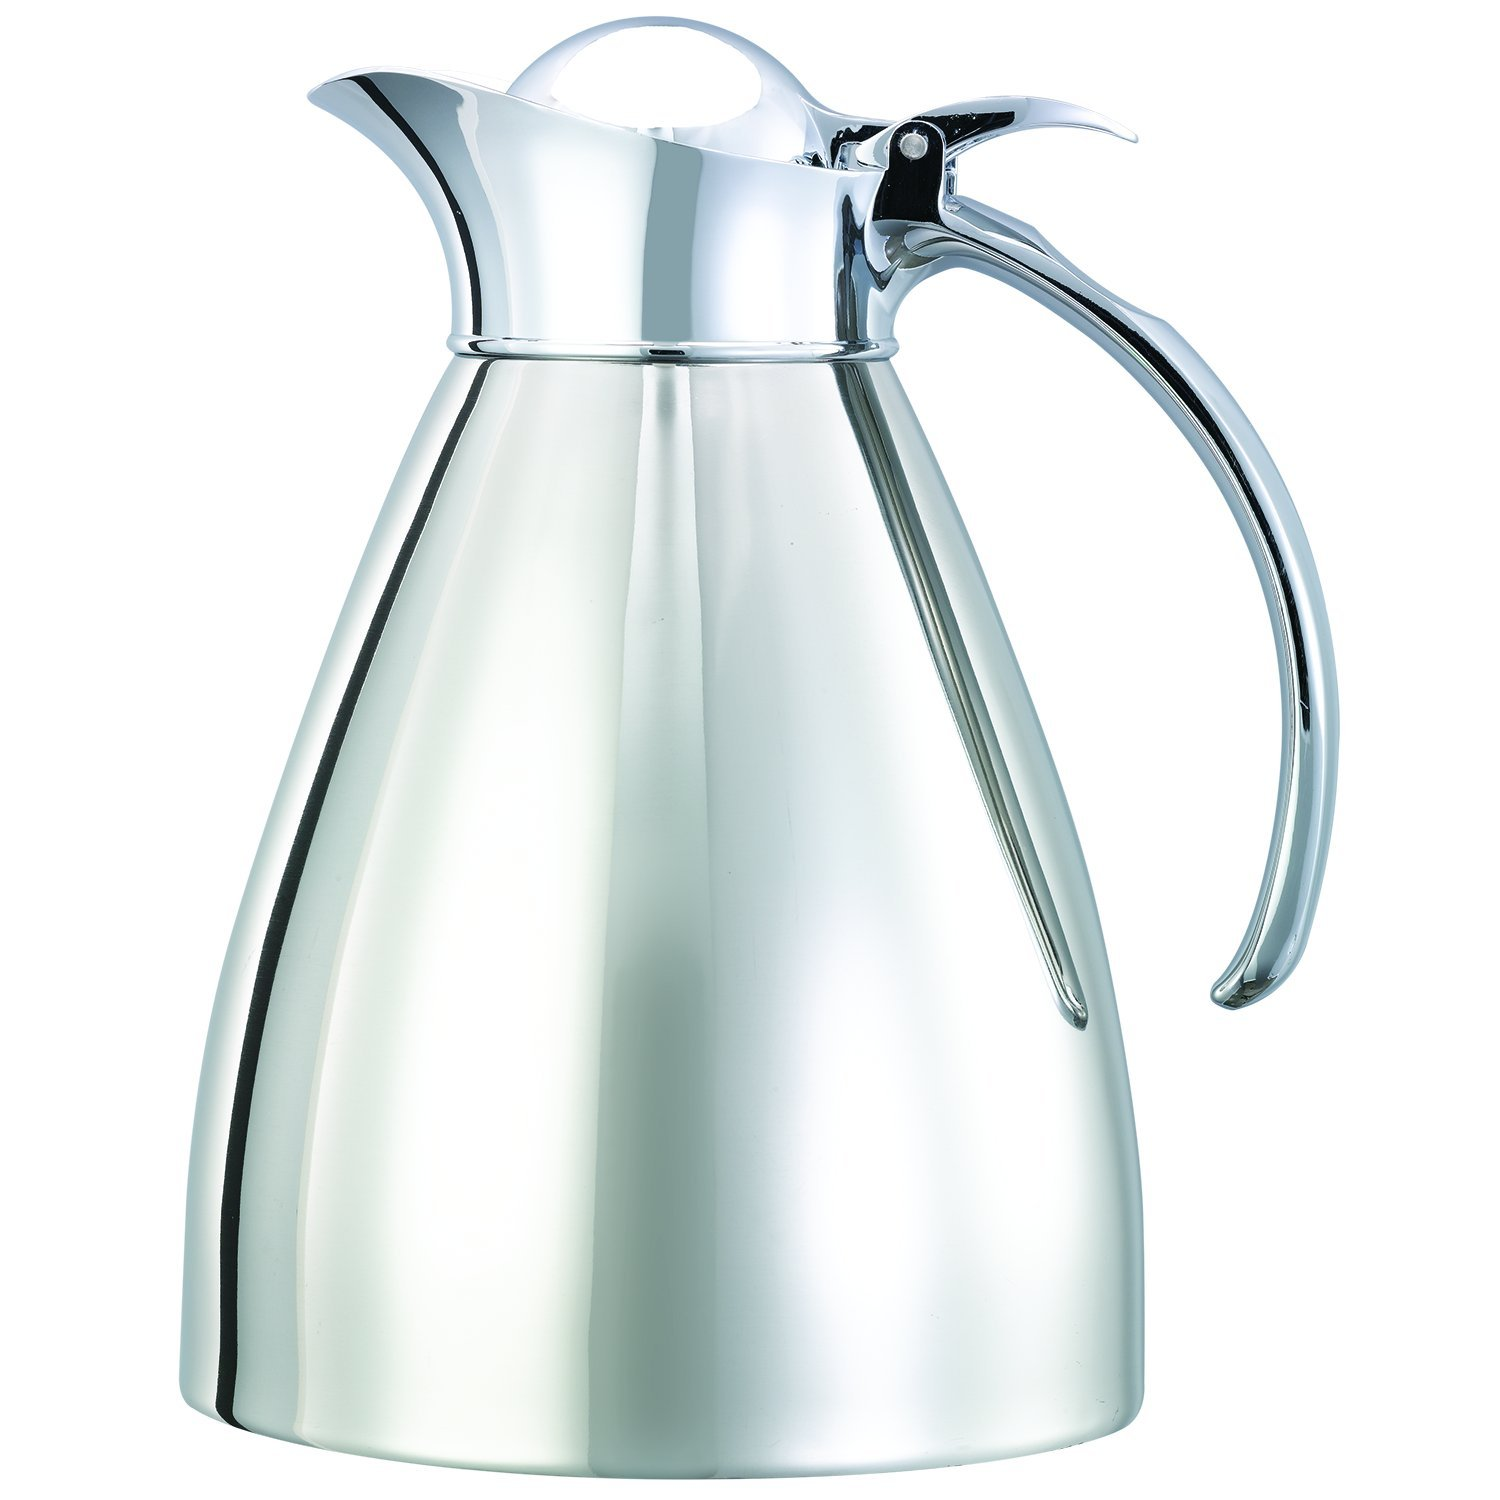 Service Ideas 982C10 Carafe, Stainless Steel, Polished, 1 L